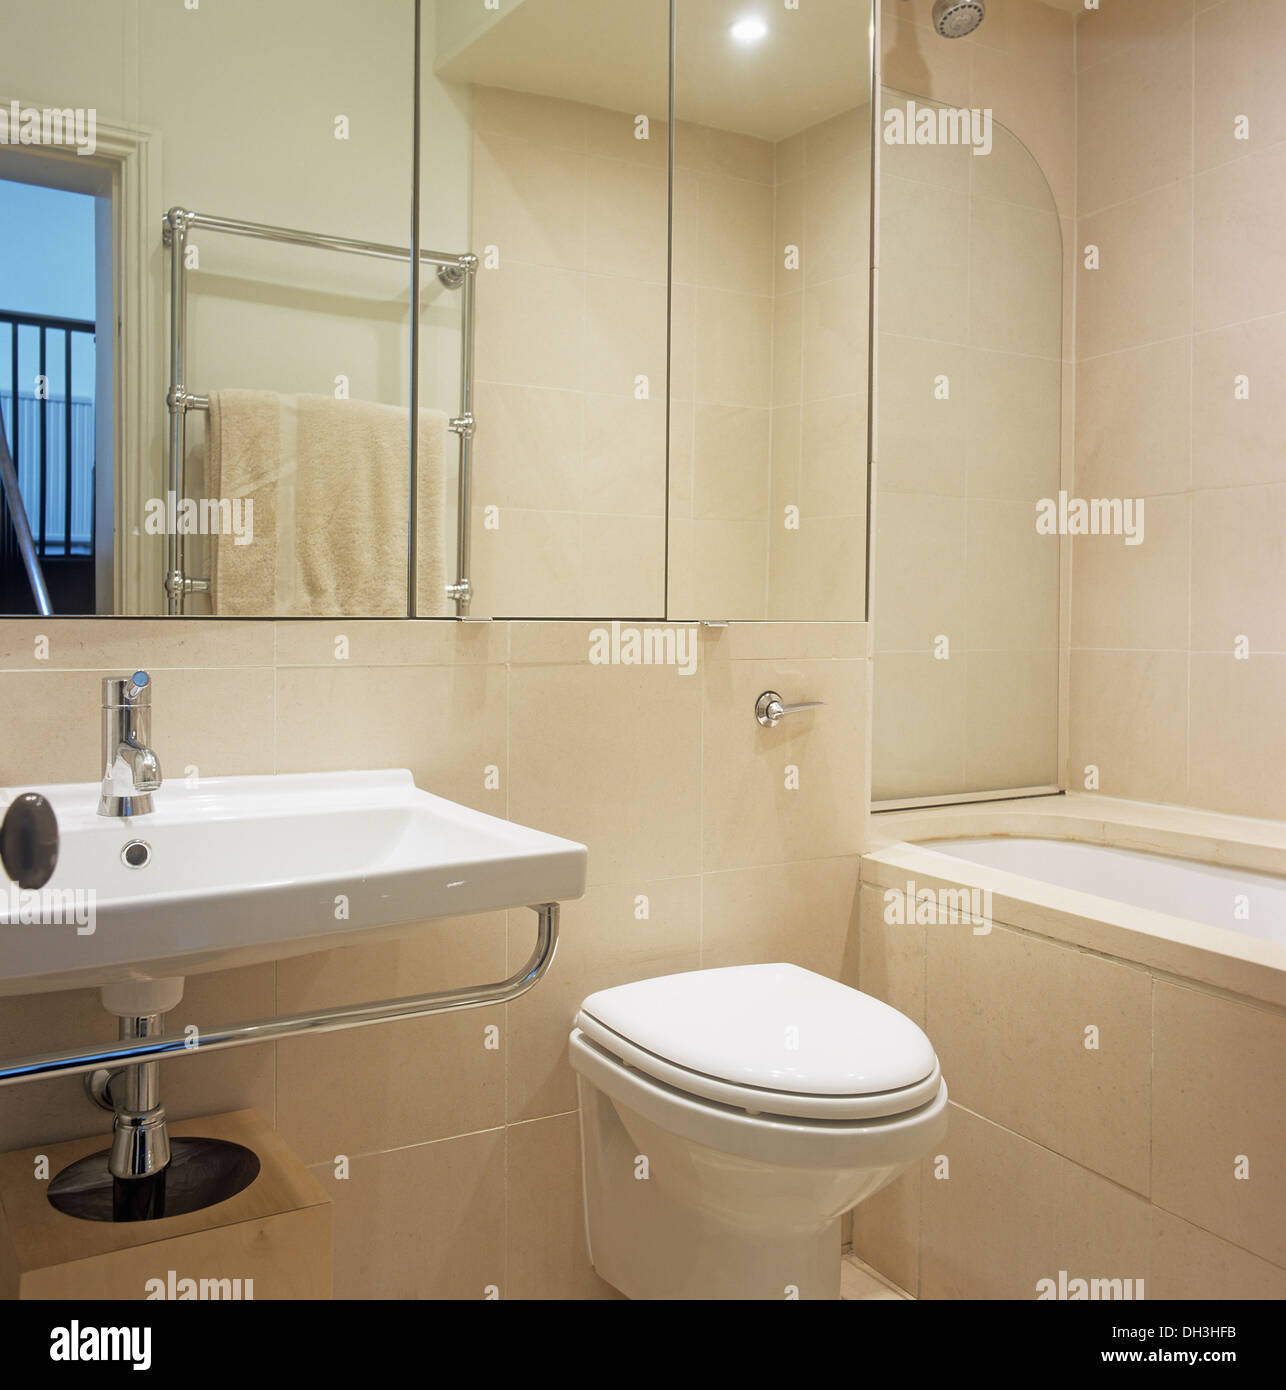 Mirror Cabinet Above Rectangular Basin And Wall Mounted Toilet In Modern  Tiled Bathroom With Under Set Bath